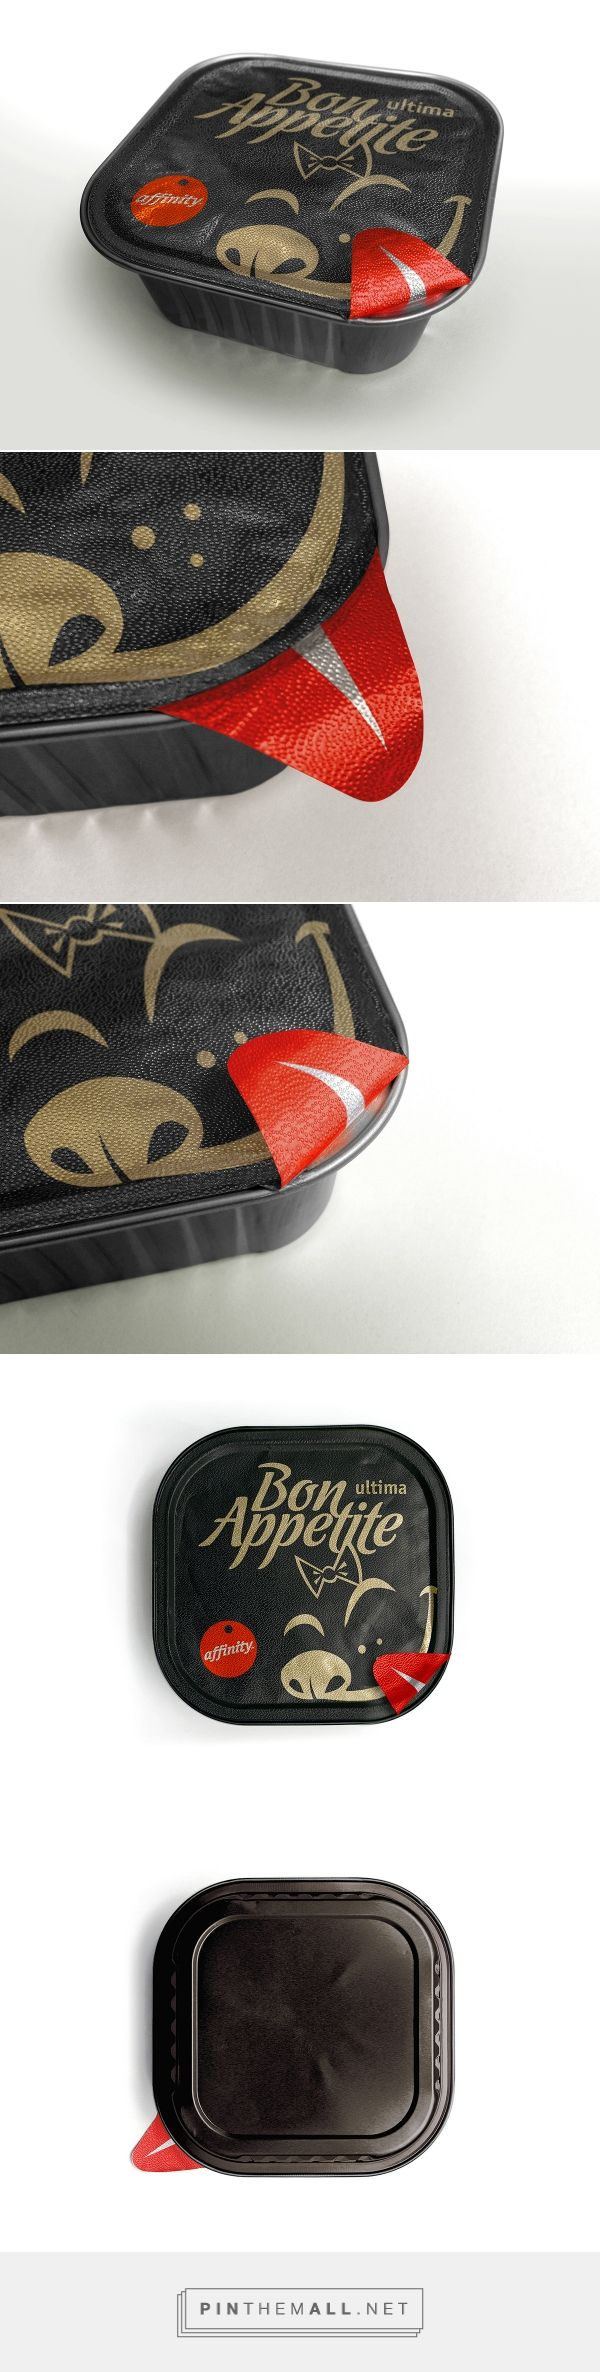 Affinity Ultima Bon Appetite on Behance by Marcal.net curated by Packaging Diva PD. A gourmet mini dog food line. Concept to communicate excellent taste, so the tab on the packaging, used to pull the lid off, is painted red to represent the tongue of a ha